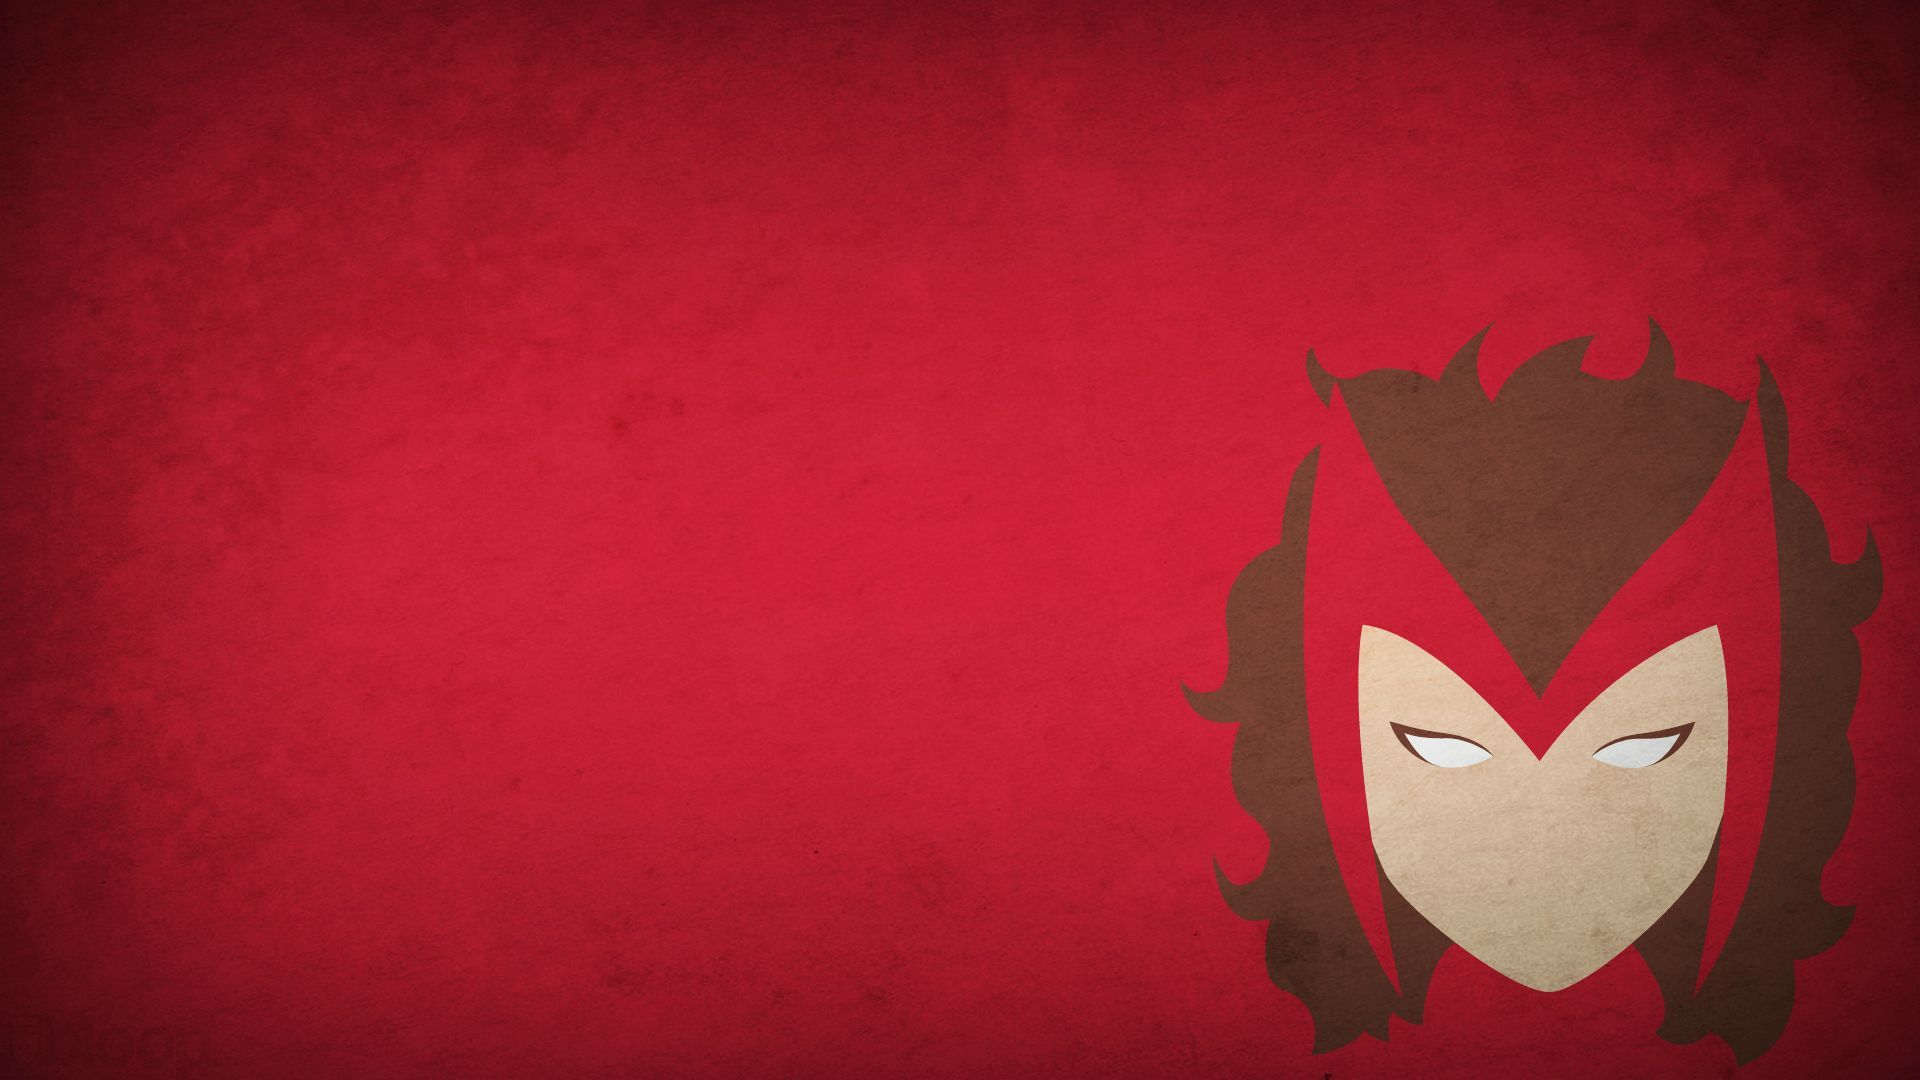 Beautiful Wallpaper Marvel Scarlet Witch - f0e9677847e362e11f898d1061c070b8  Best Photo Reference_338411.jpg